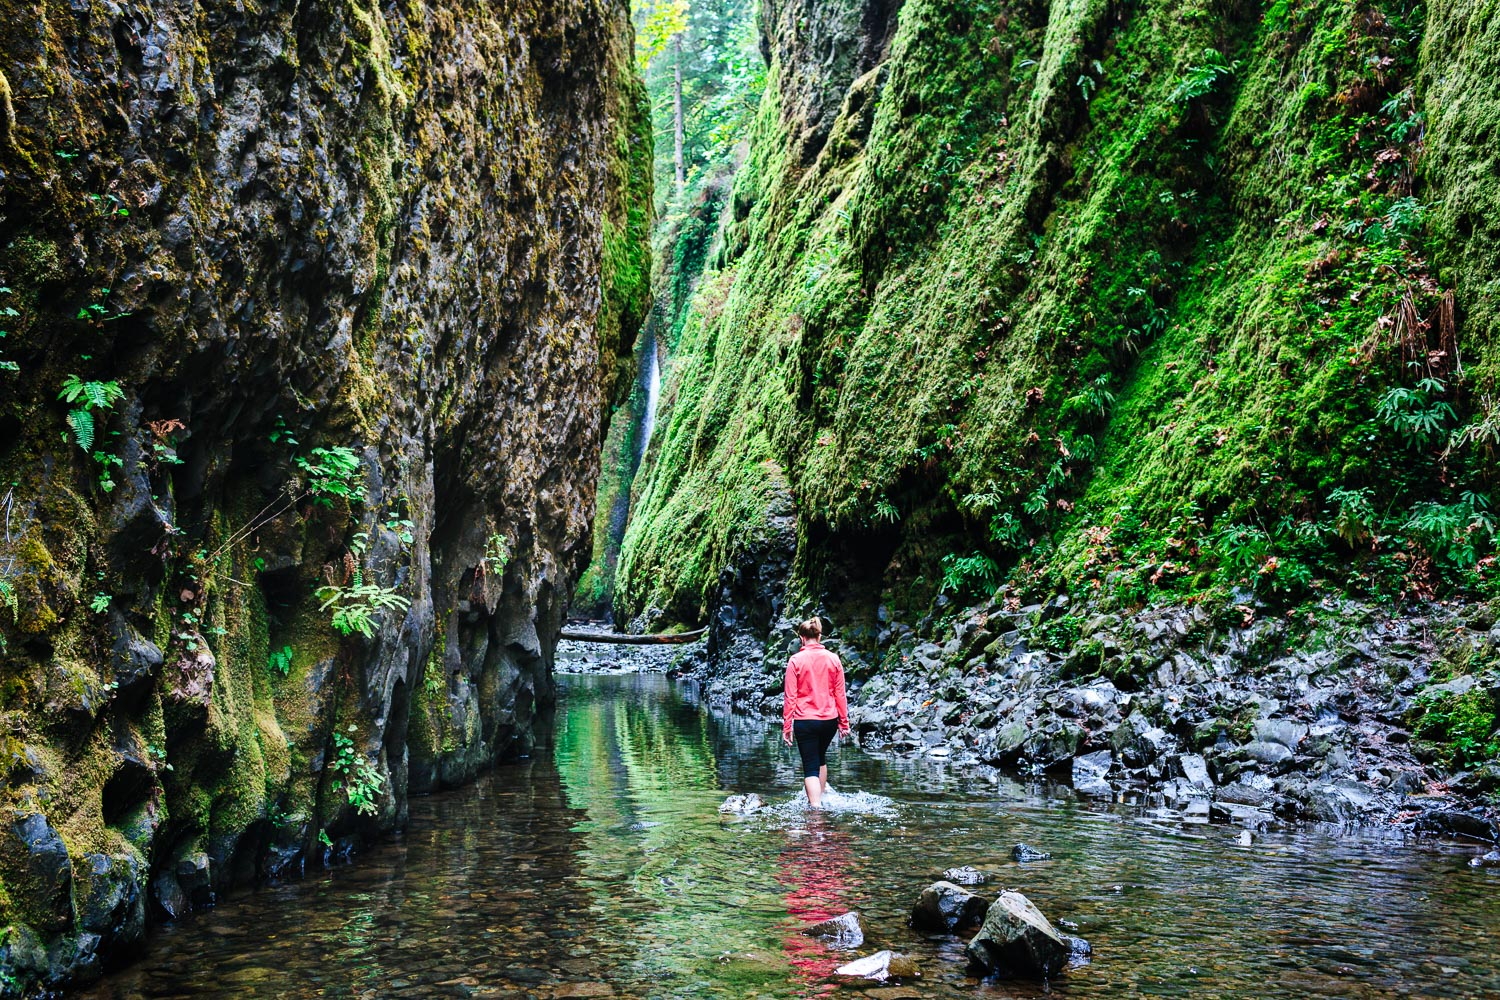 Hike up the river to Lower Oneonta Falls, Oregon